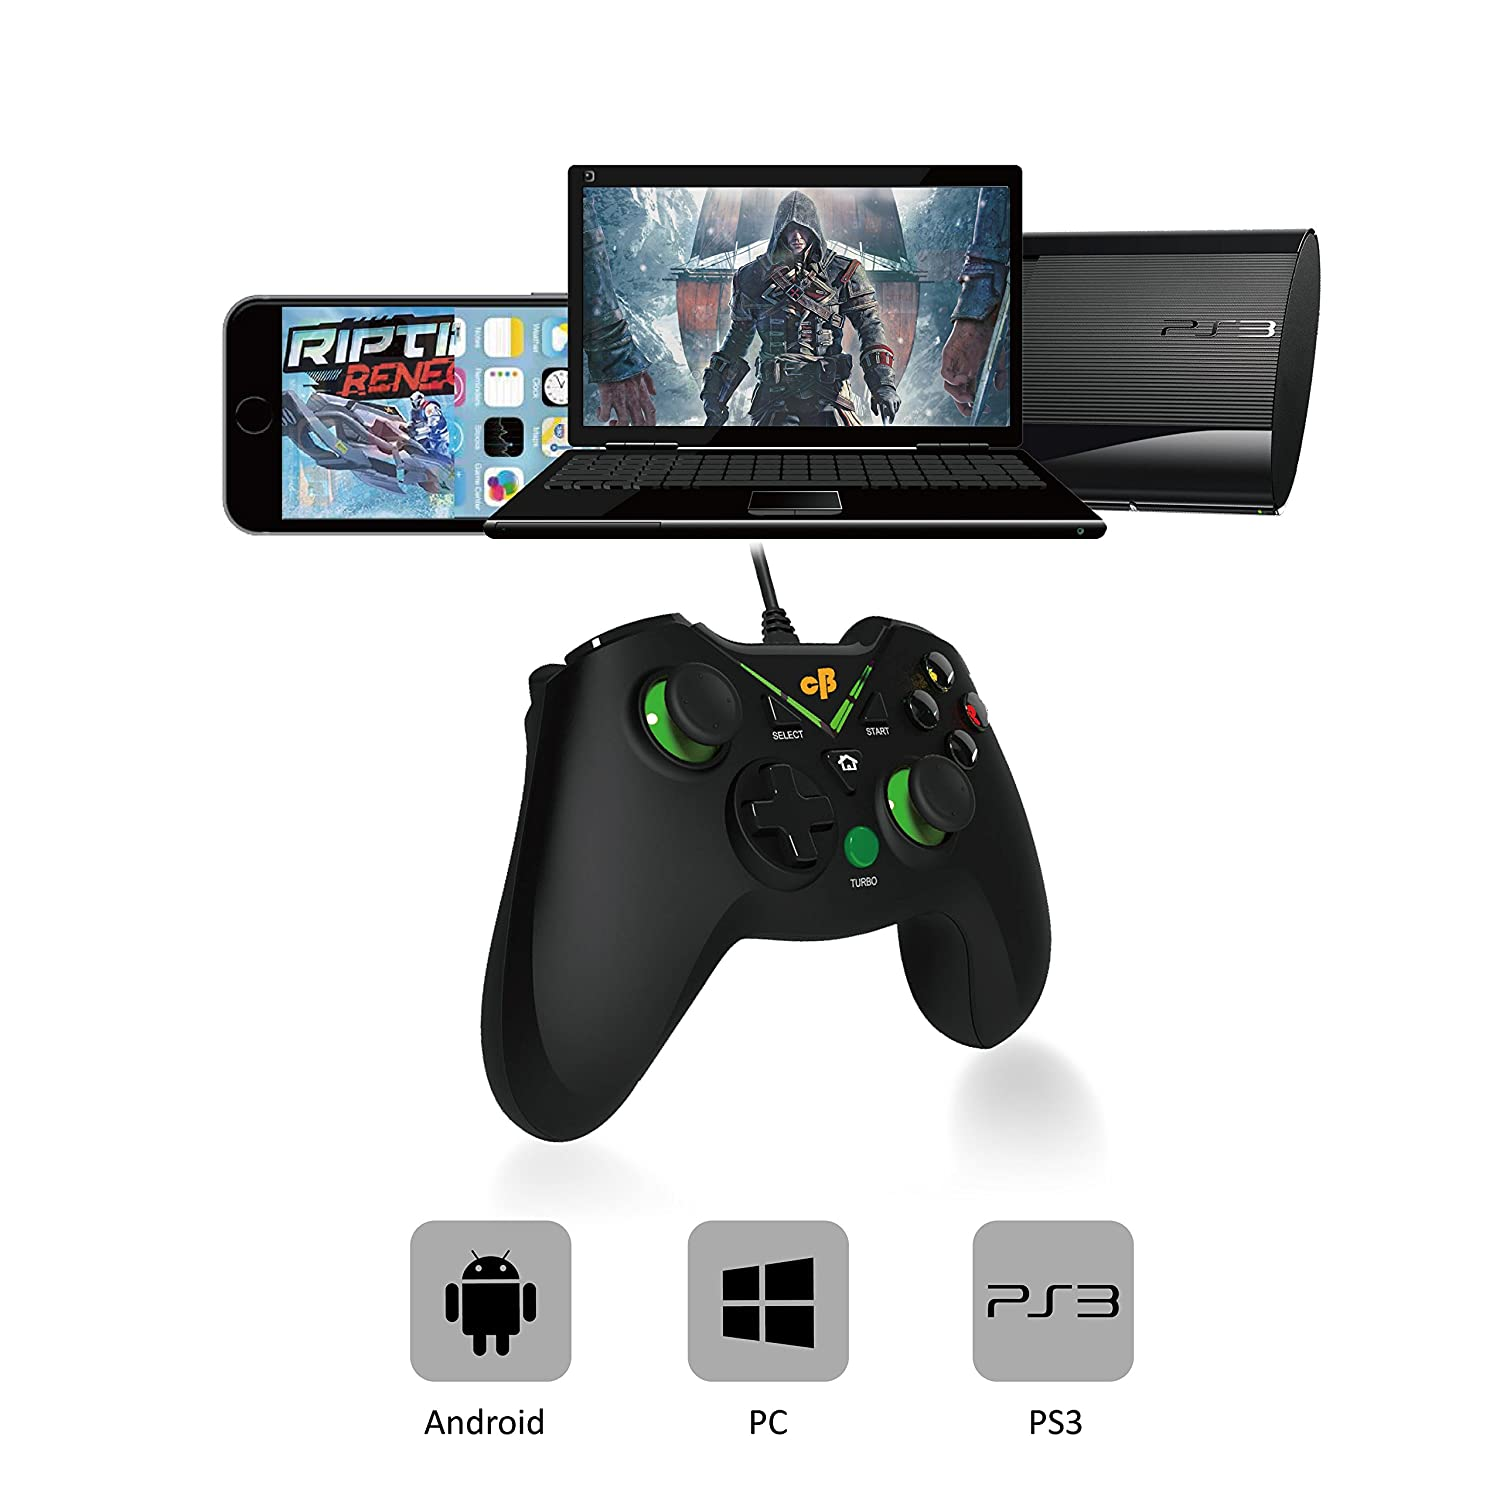 3595ed423d5 Cosmic Byte C1070T Interstellar Wired Gamepad for PC/PS3/Android support  for Windows XP/7/8/10, Rubberized Texture, Drivers: Amazon.in: Video Games